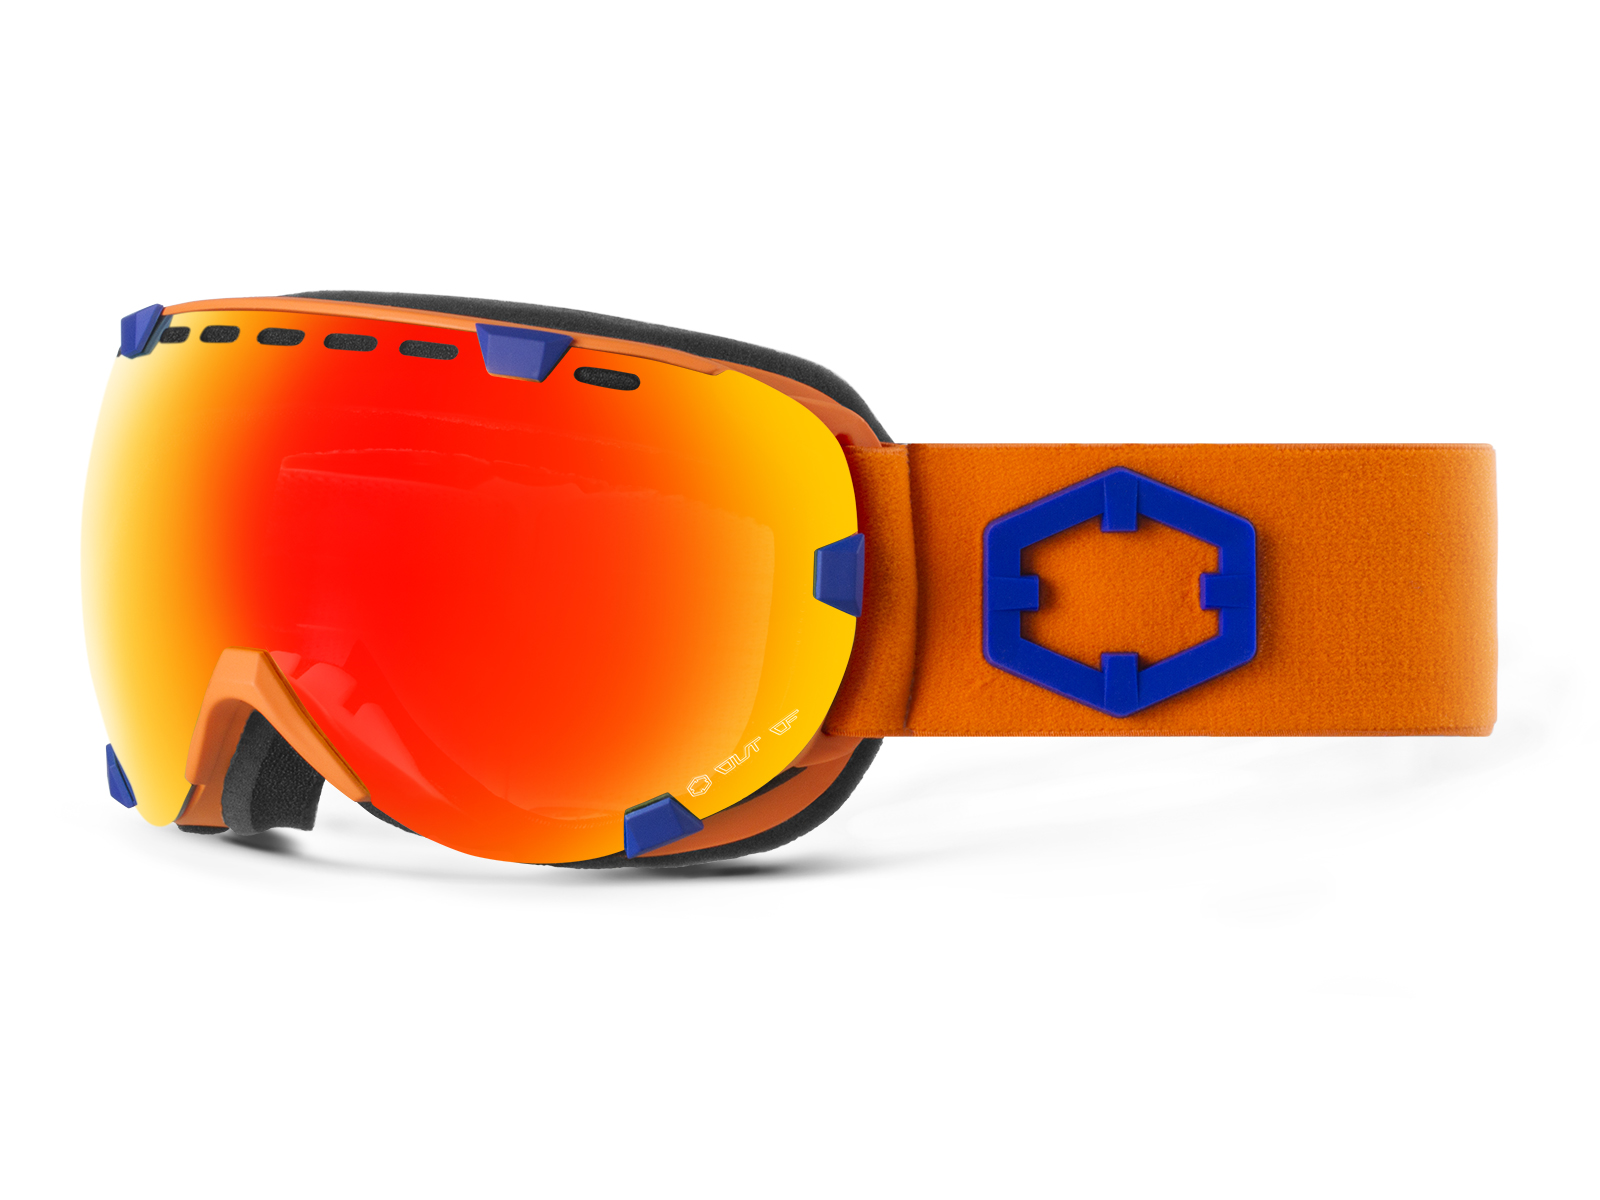 EYES BLUE ORANGE RED MCI GOGGLE